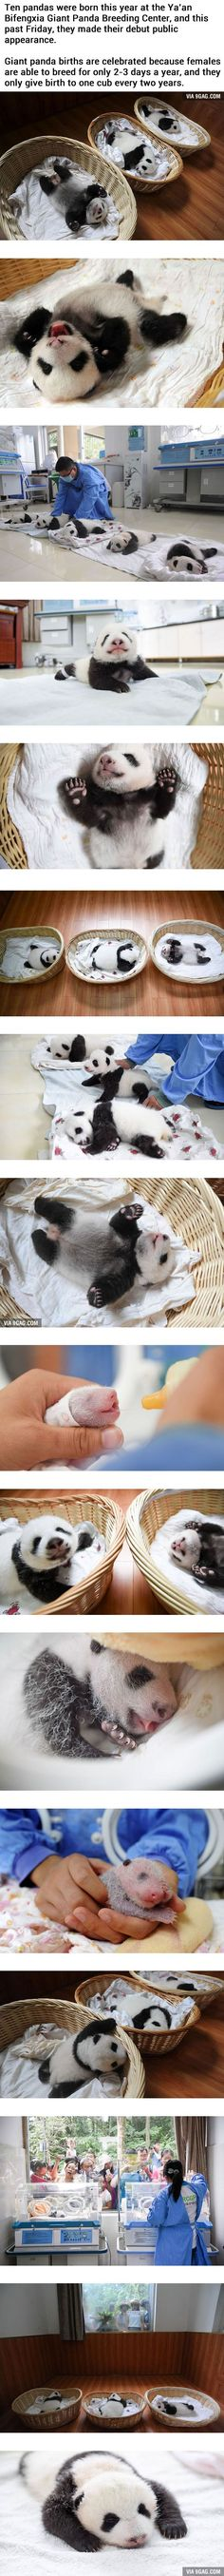 Newborn Panda Babies Say Their First Hello At Chinese Panda Breeding Center - 9GAG